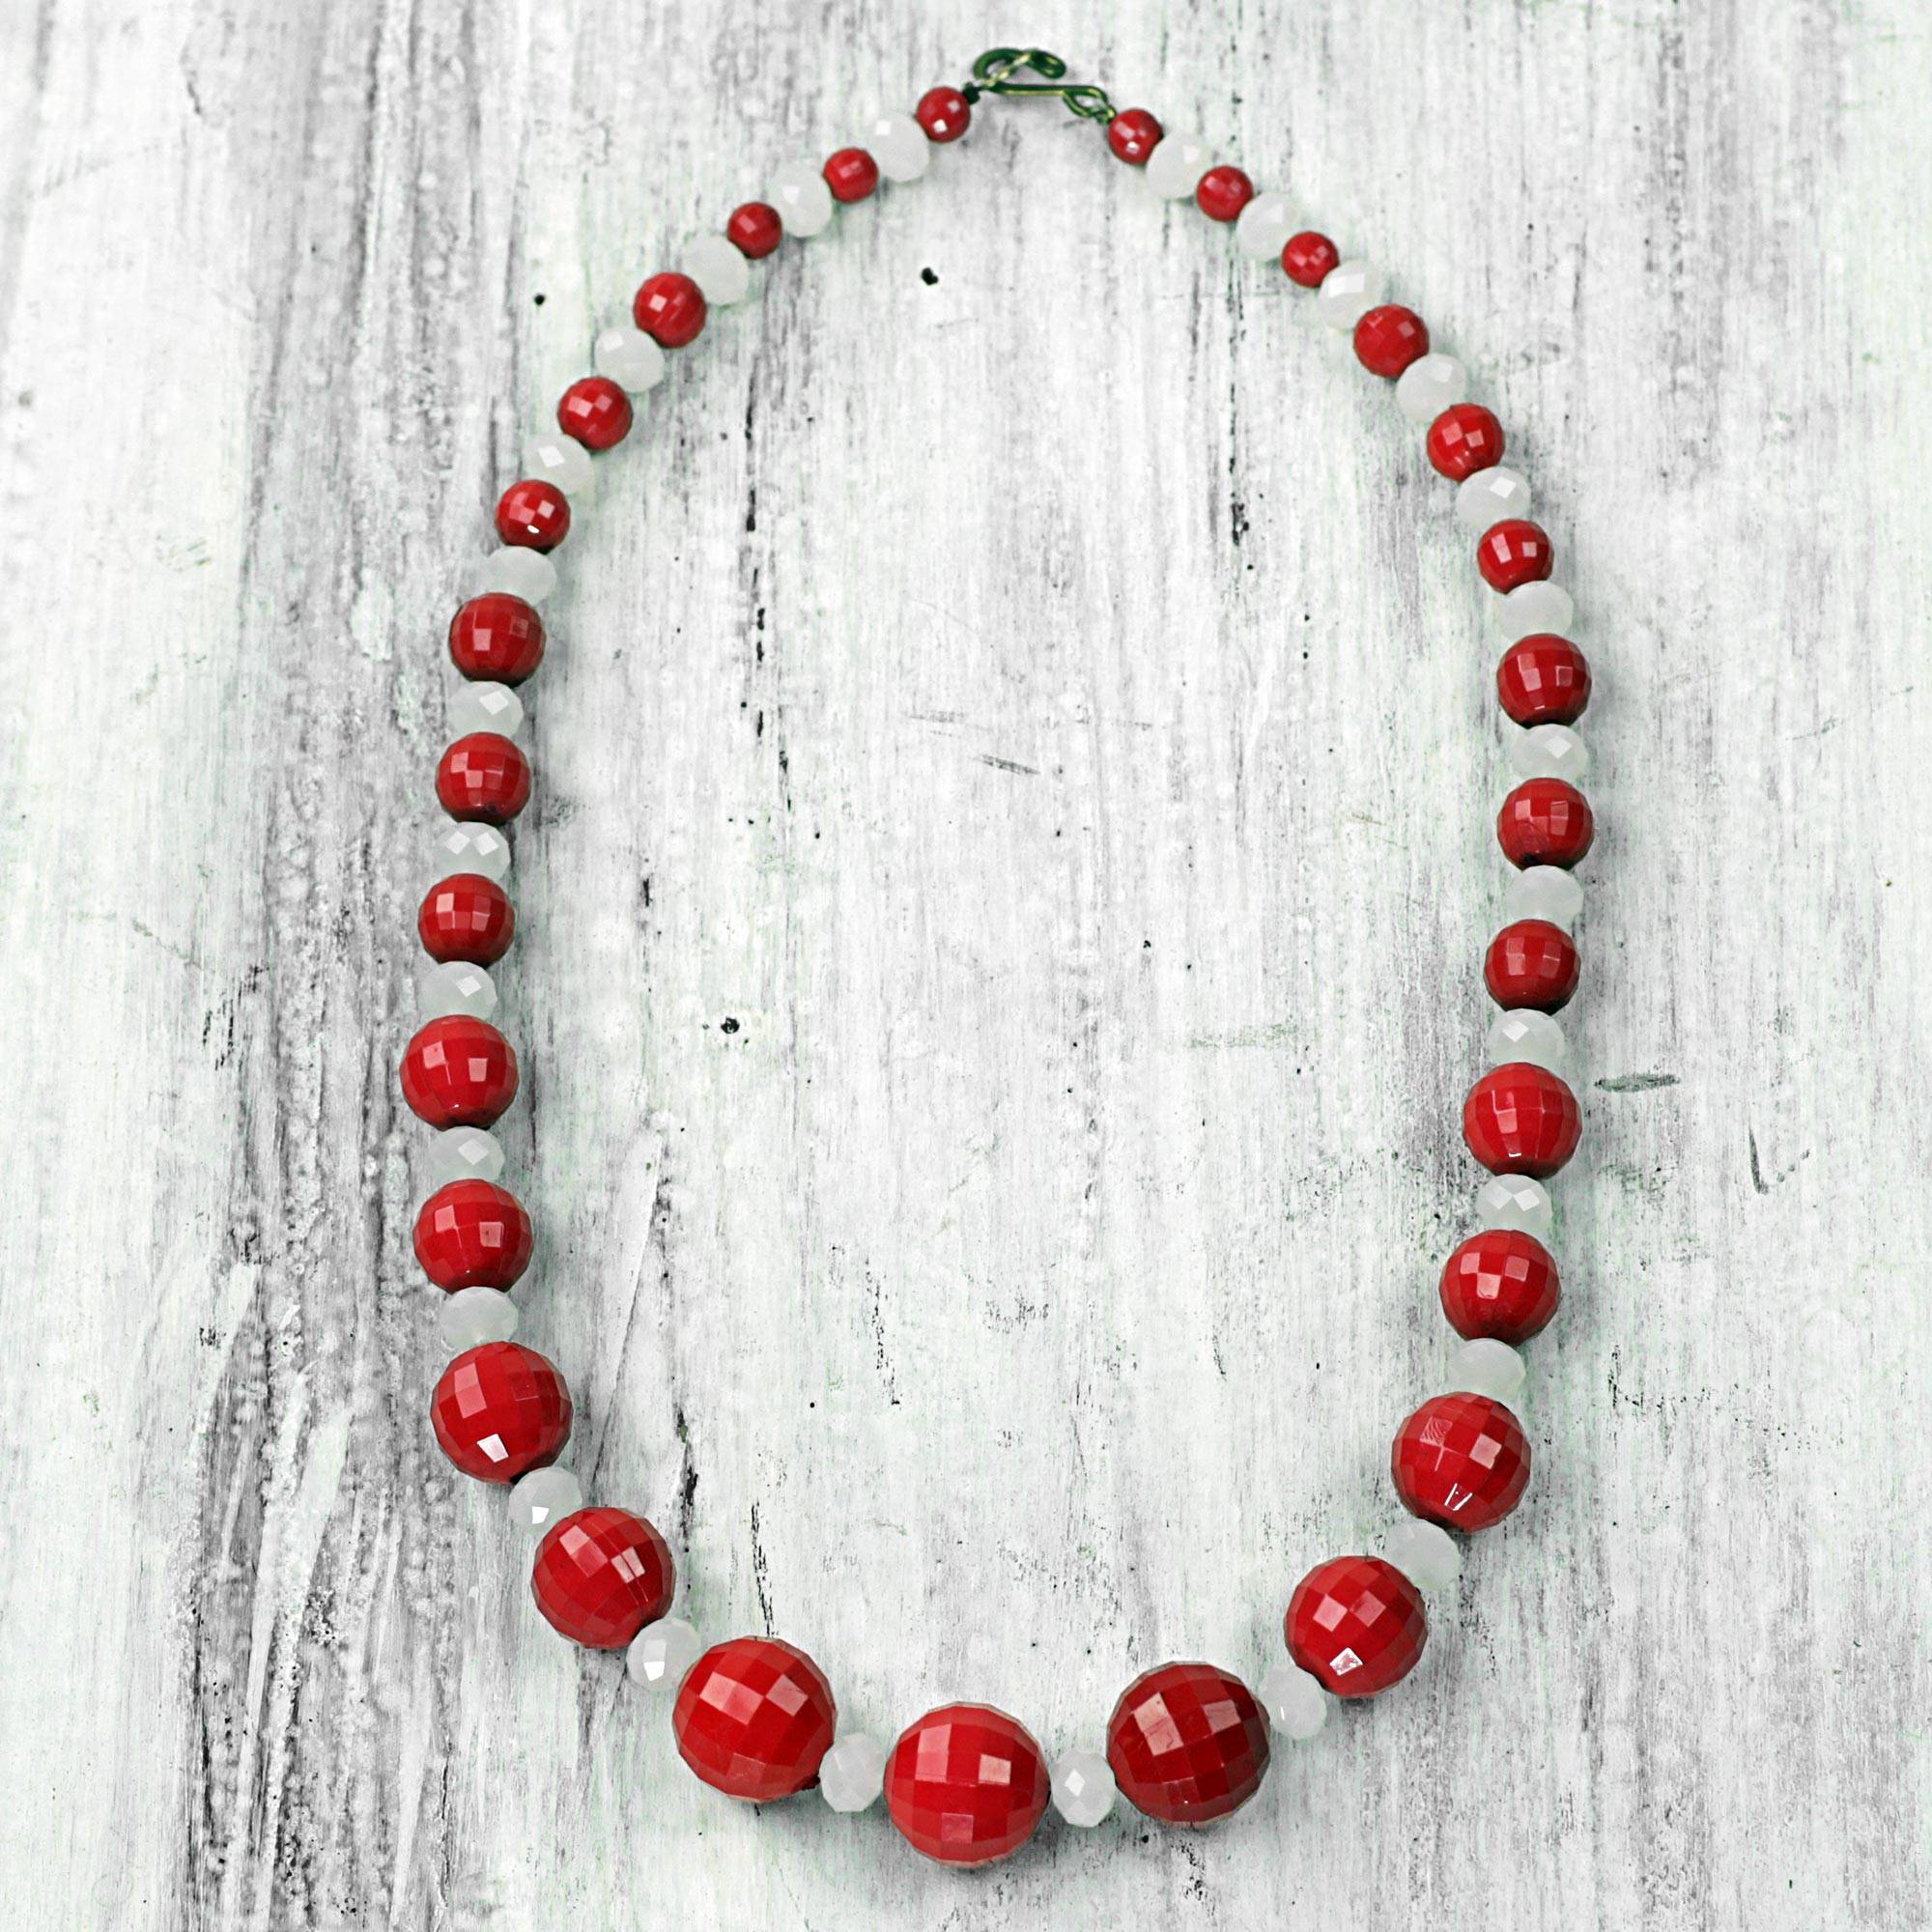 Mystical Aura Hand Crafted Recycled Plastic Beaded Necklace a love story